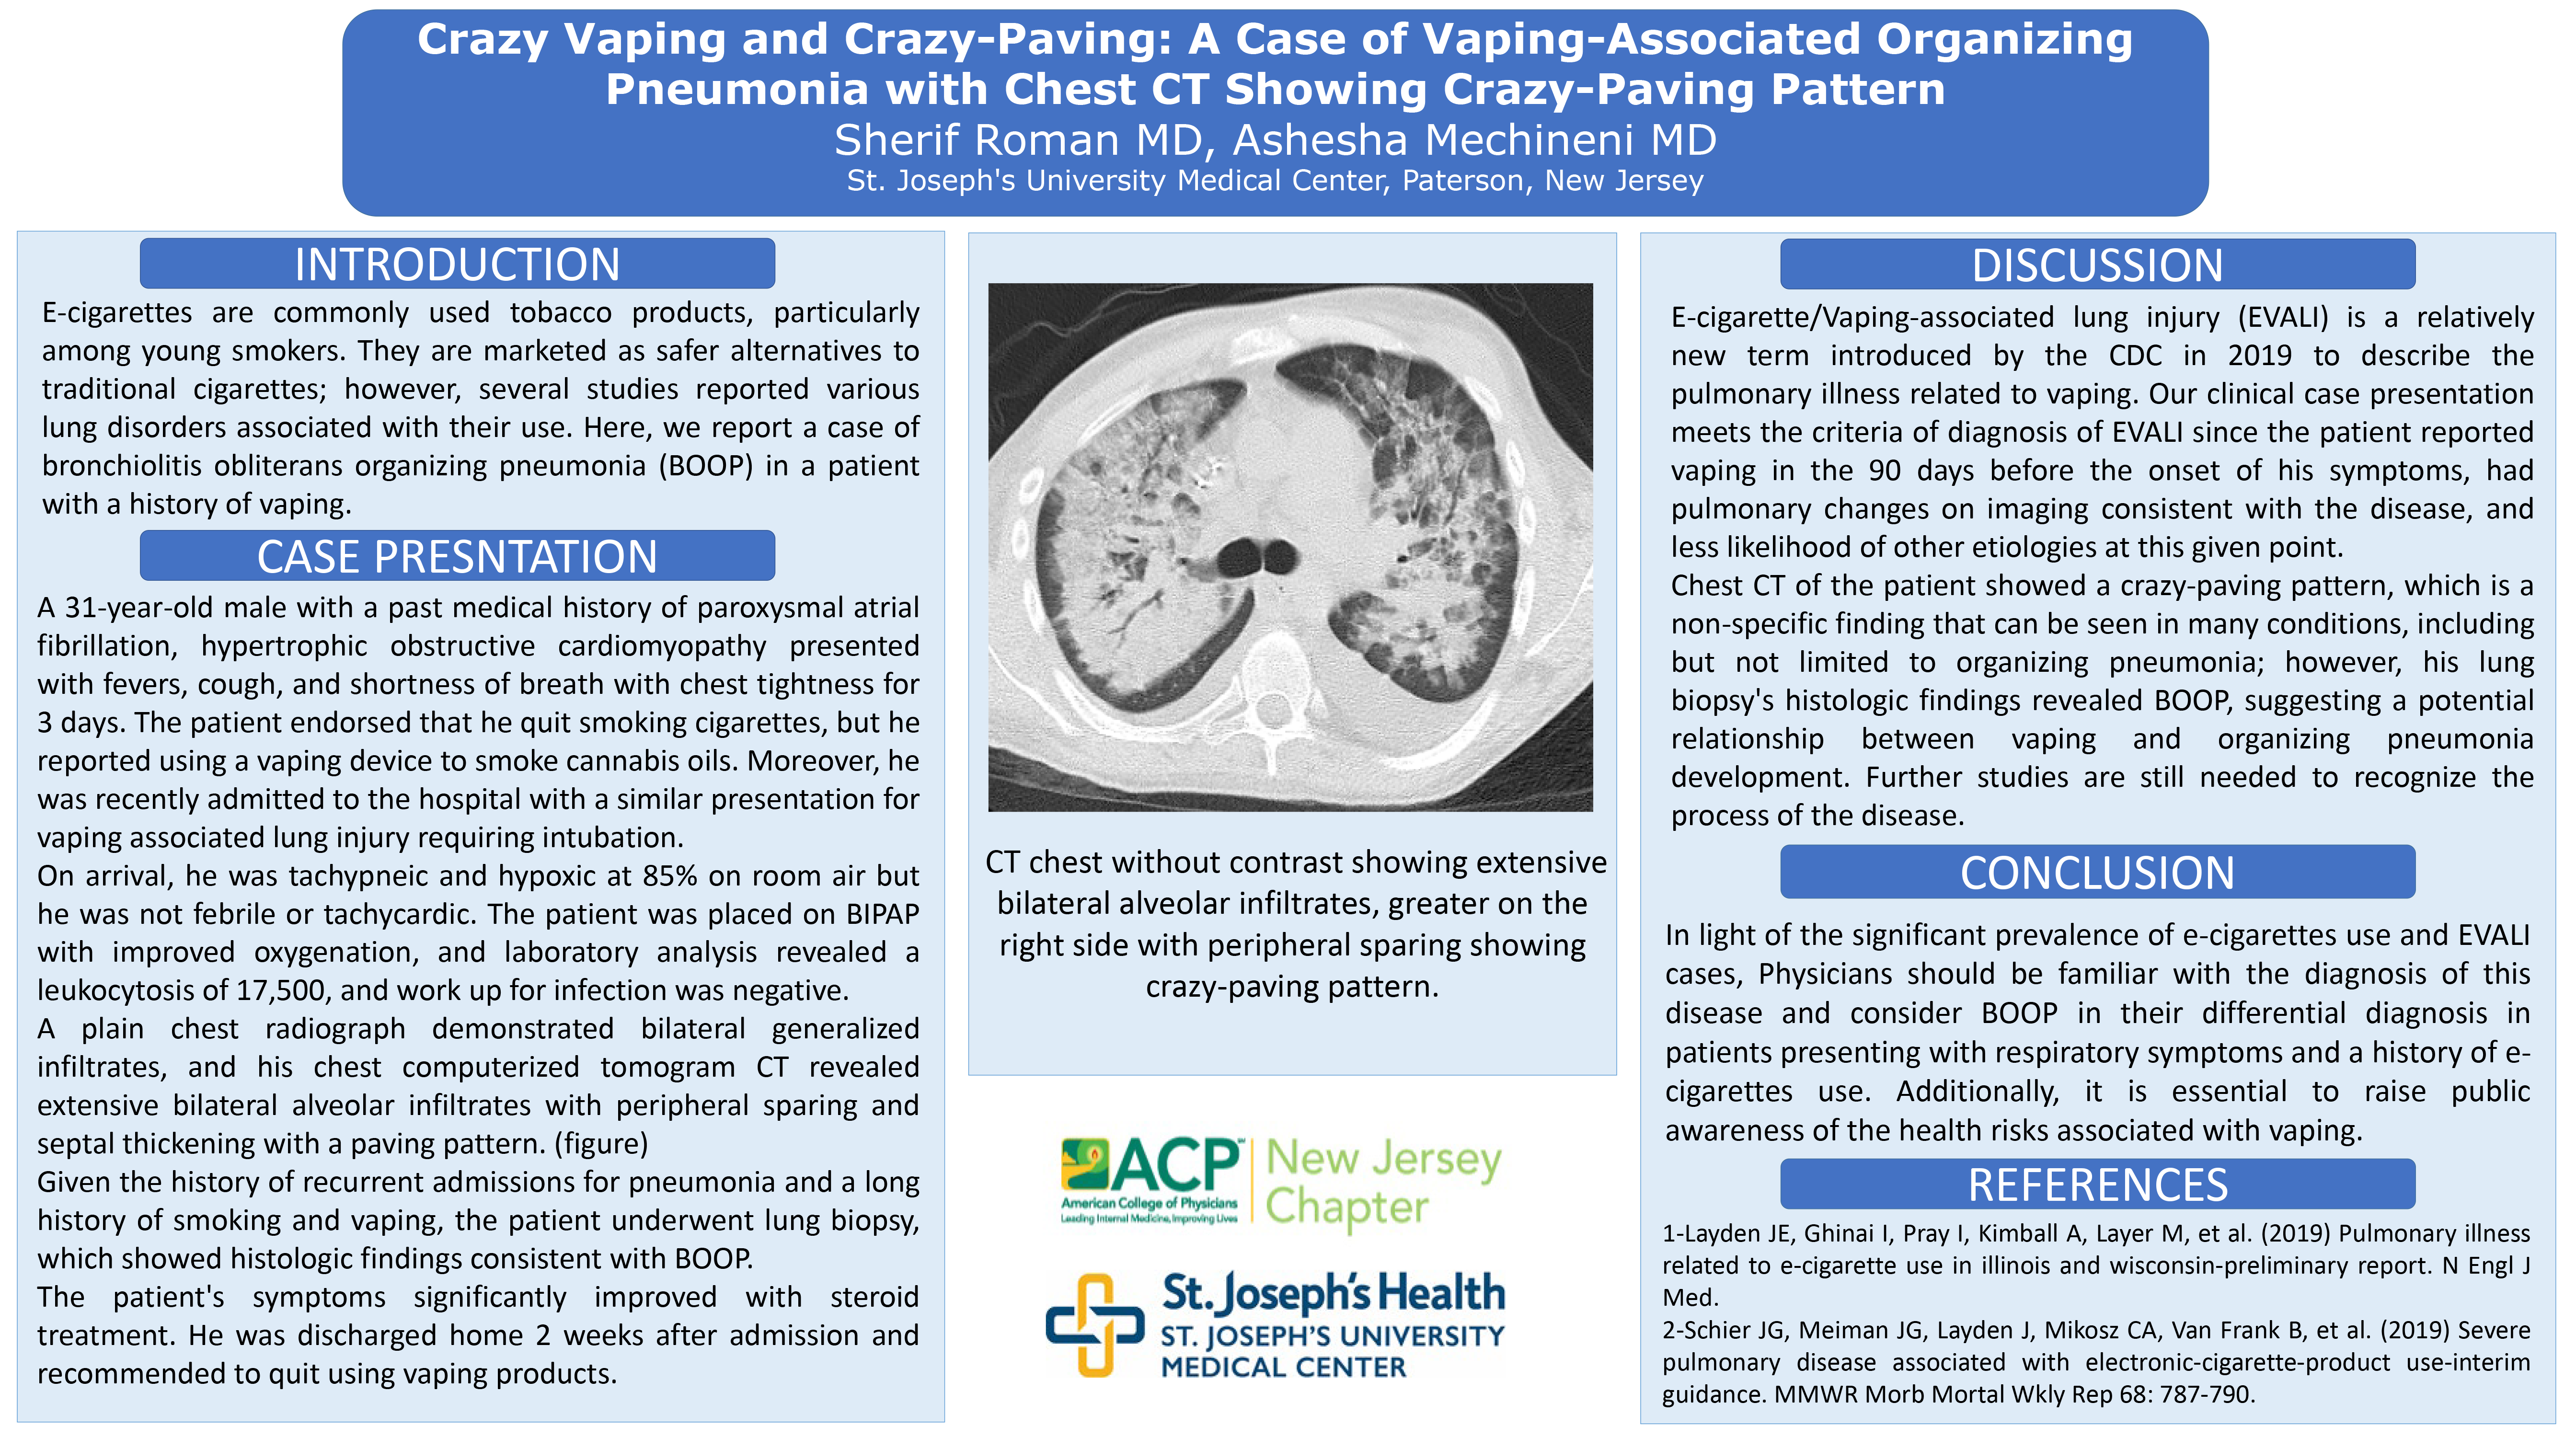 30-CV-98-Crazy Vaping and Crazy-Paving A Case of Vaping-Associated Organizing Pneumonia with Chest CT